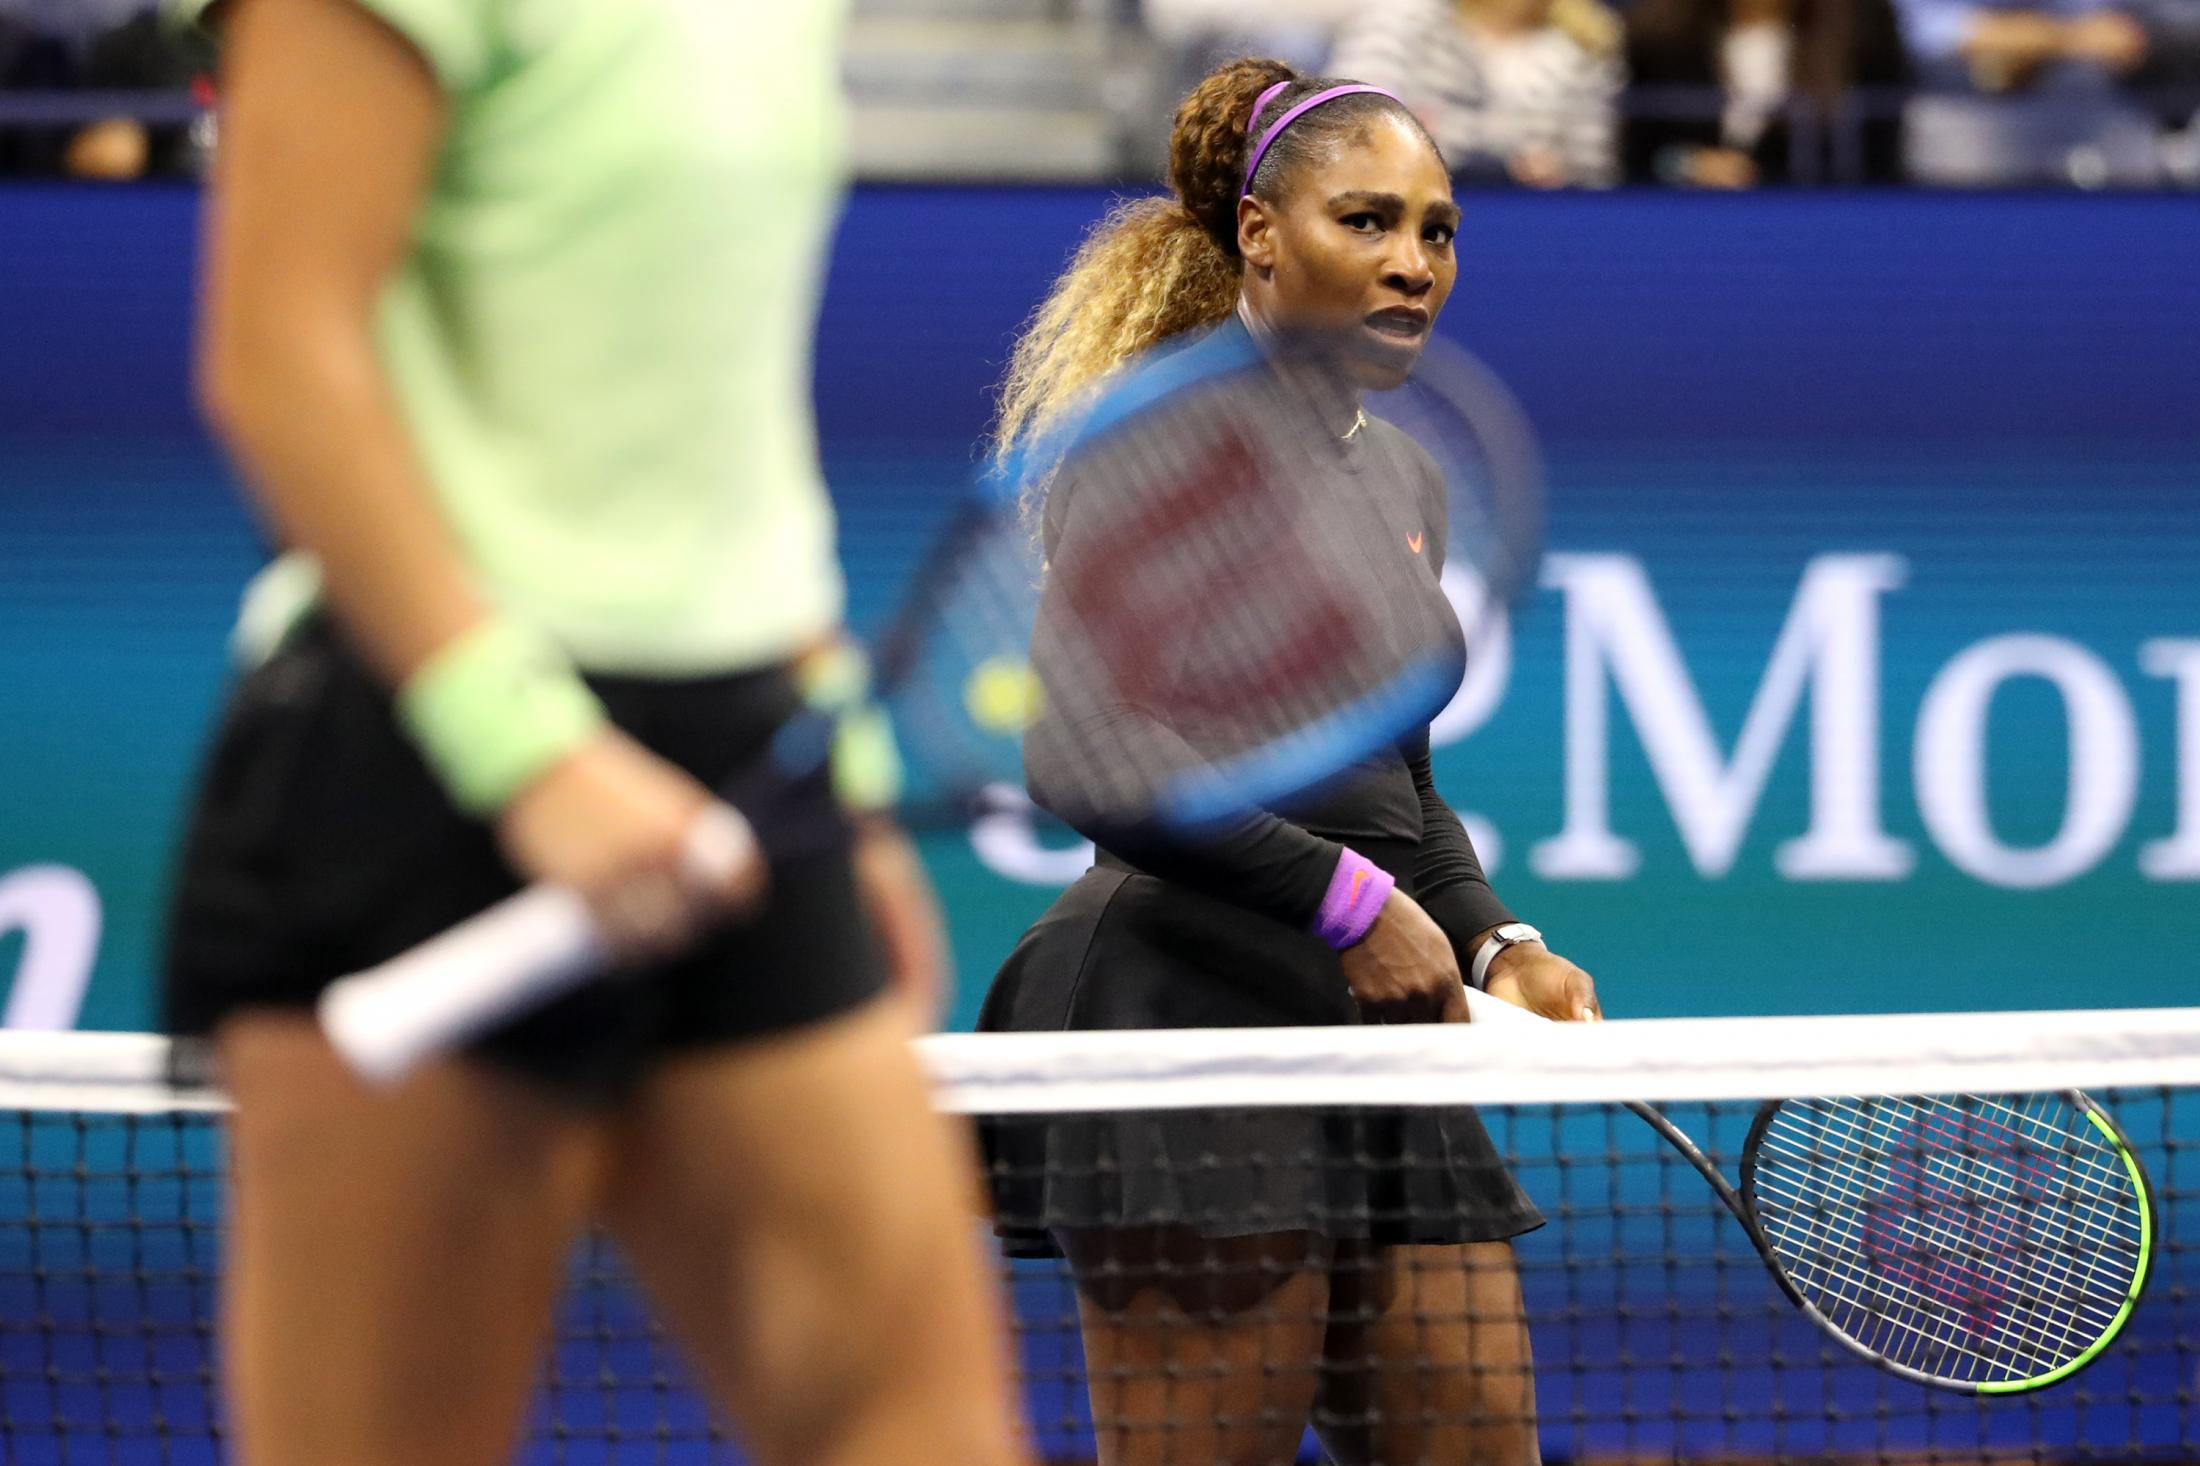 NEW YORK, NEW YORK - AUGUST 28: Serena Williams of the United States looks on during her Women's Singles second round match against Catherine McNally of the United States on day three of the 2019 US Open at the USTA Billie Jean King National Tennis Center on August 28, 2019 in the Flushing neighborhood of the Queens borough of New York City. (Photo by Katharine Lotze/Getty Images)